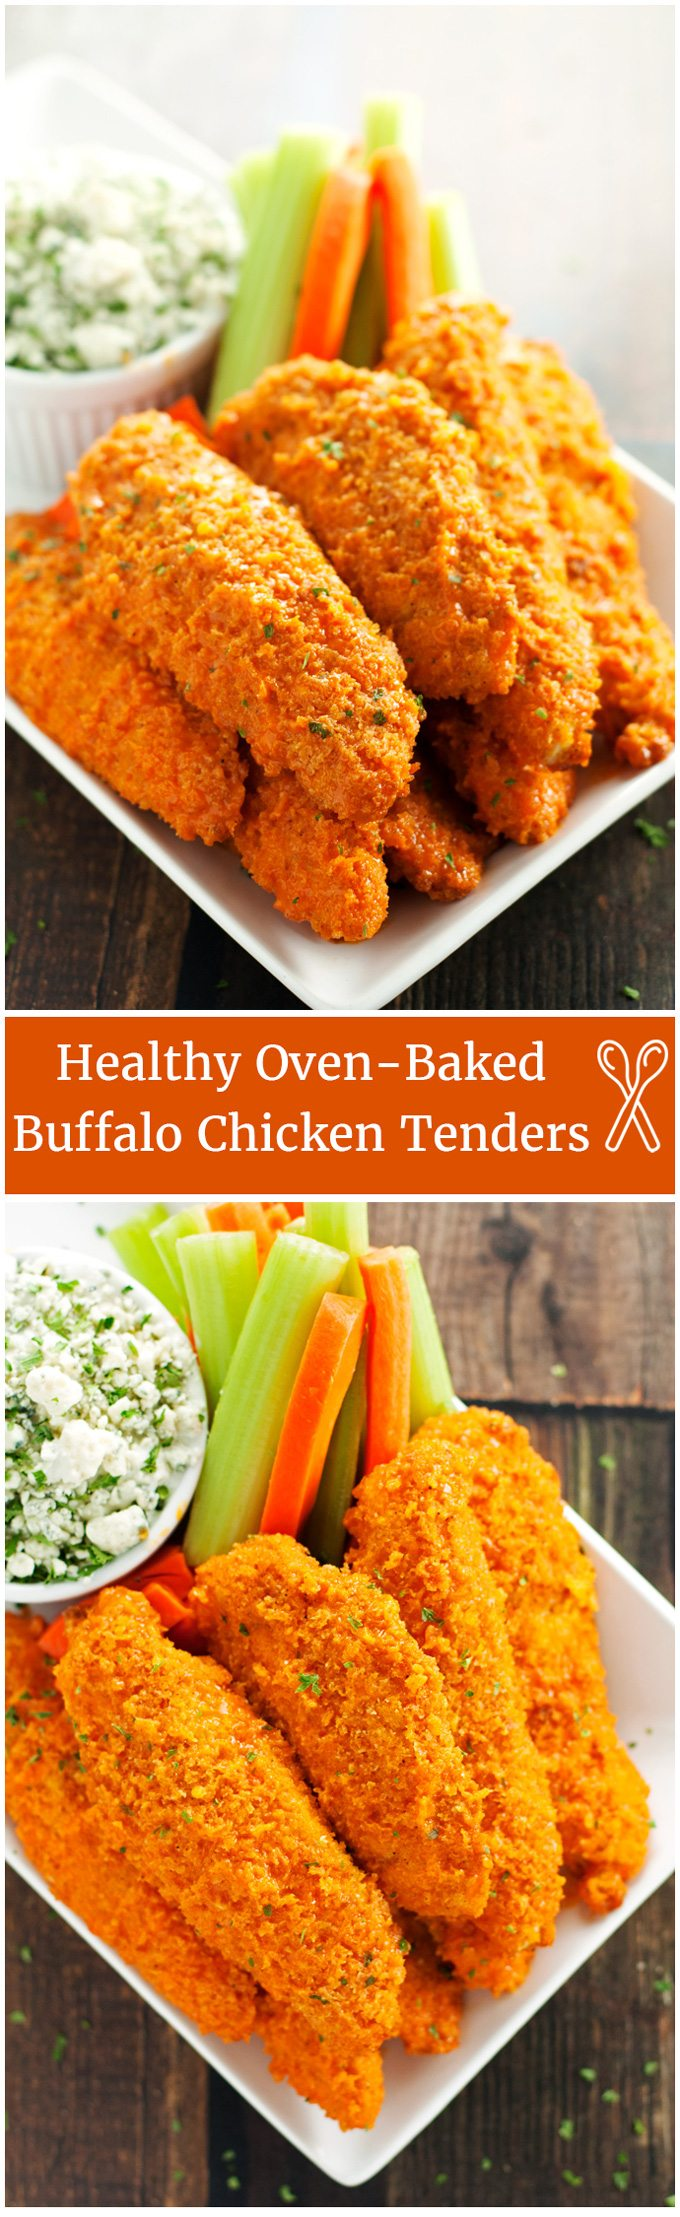 Healthy Crispy Oven-Baked Buffalo Chicken Tenders - 2teaspoons